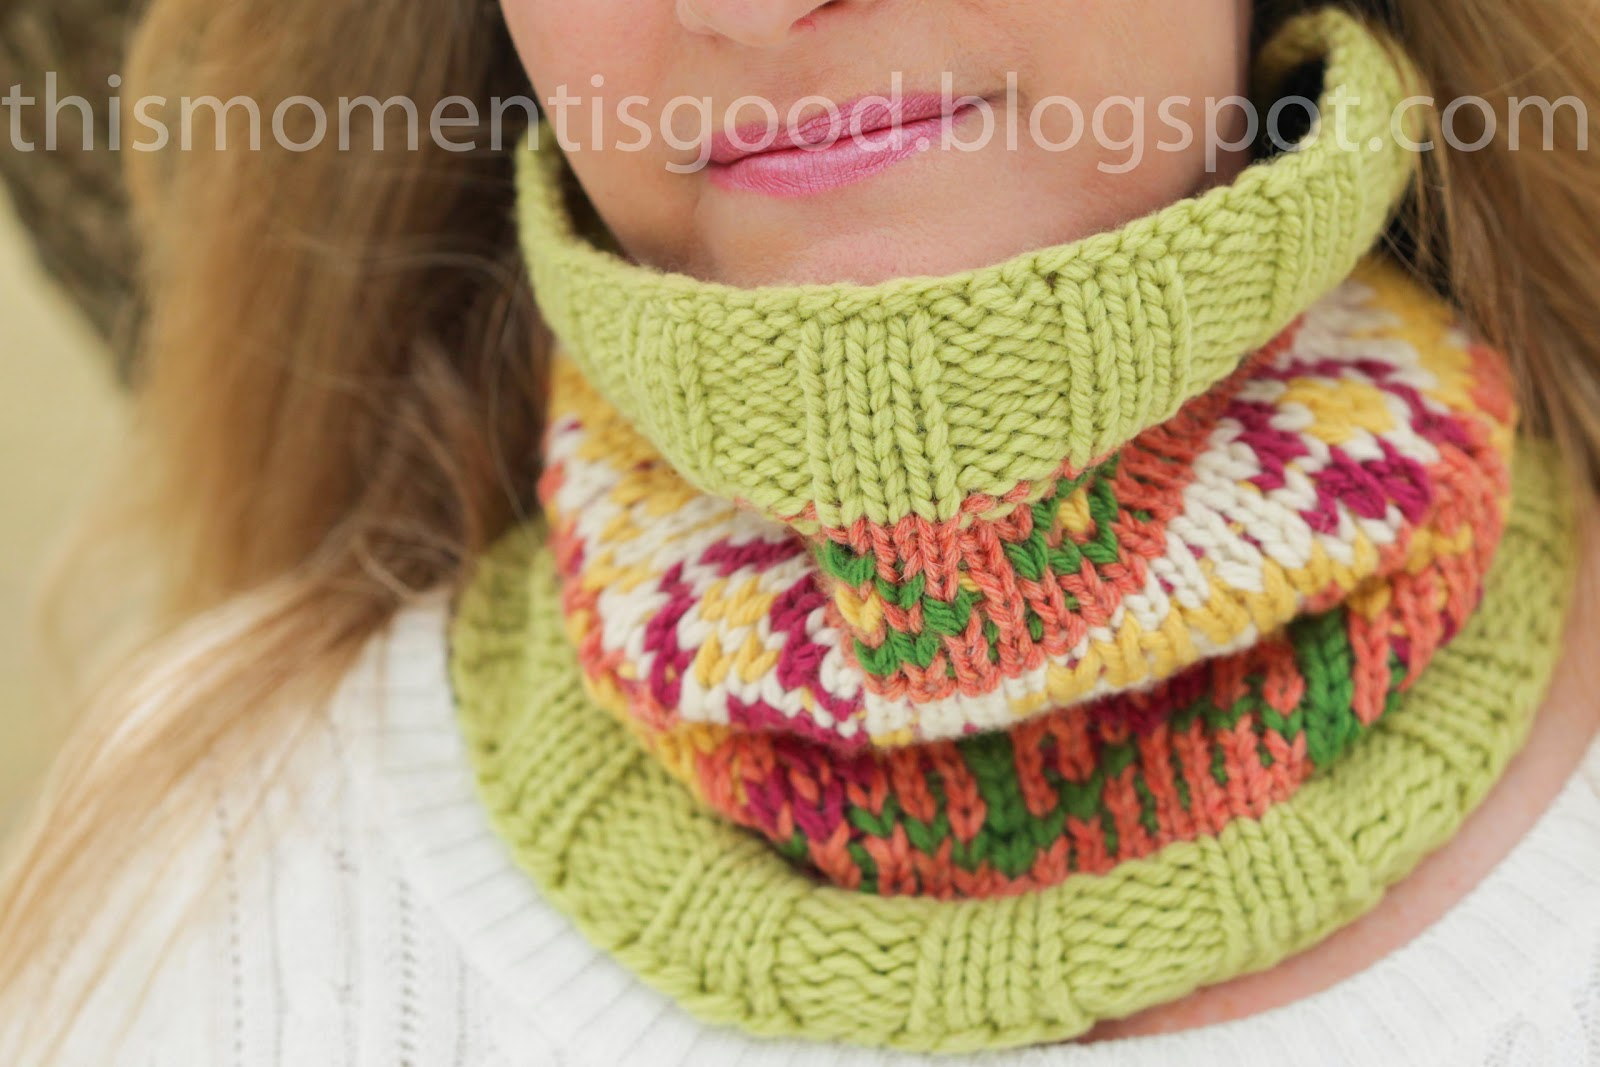 LOOM KNIT FAIR ISLE COWL | Loom Knitting by This Moment is Good!